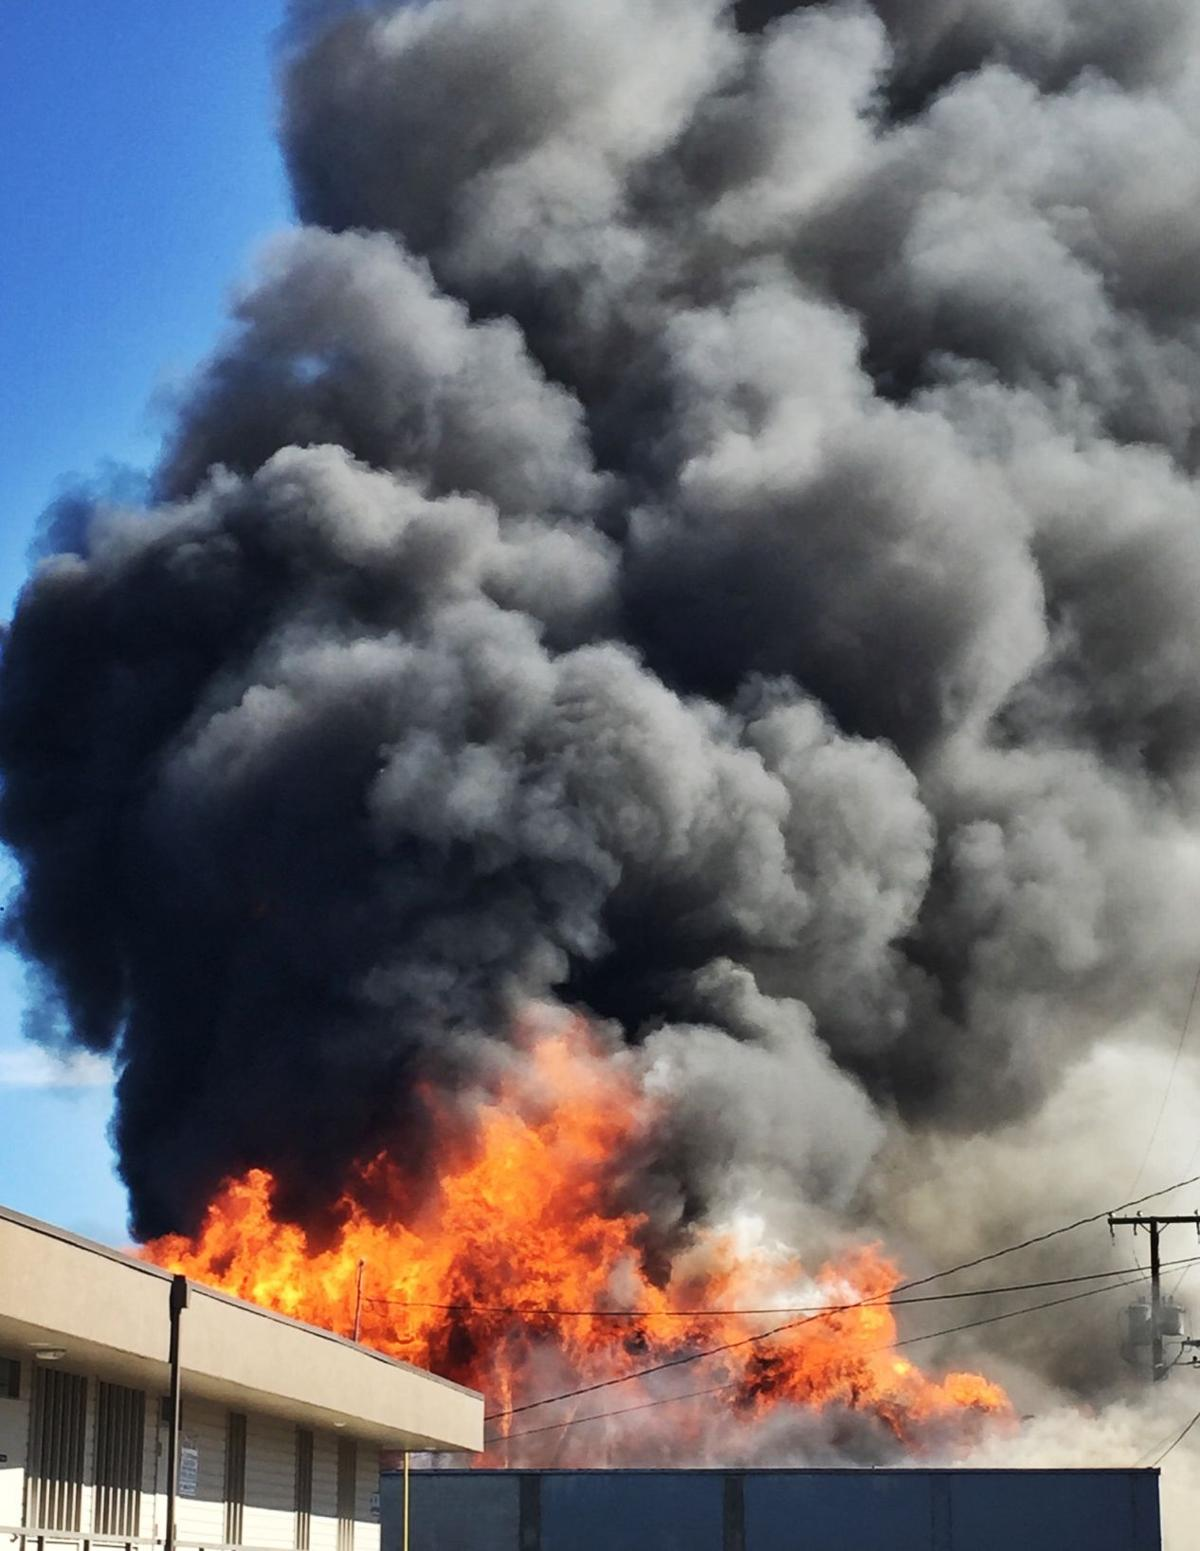 Timeline and photos from the Southtowne Lanes fire, now contained